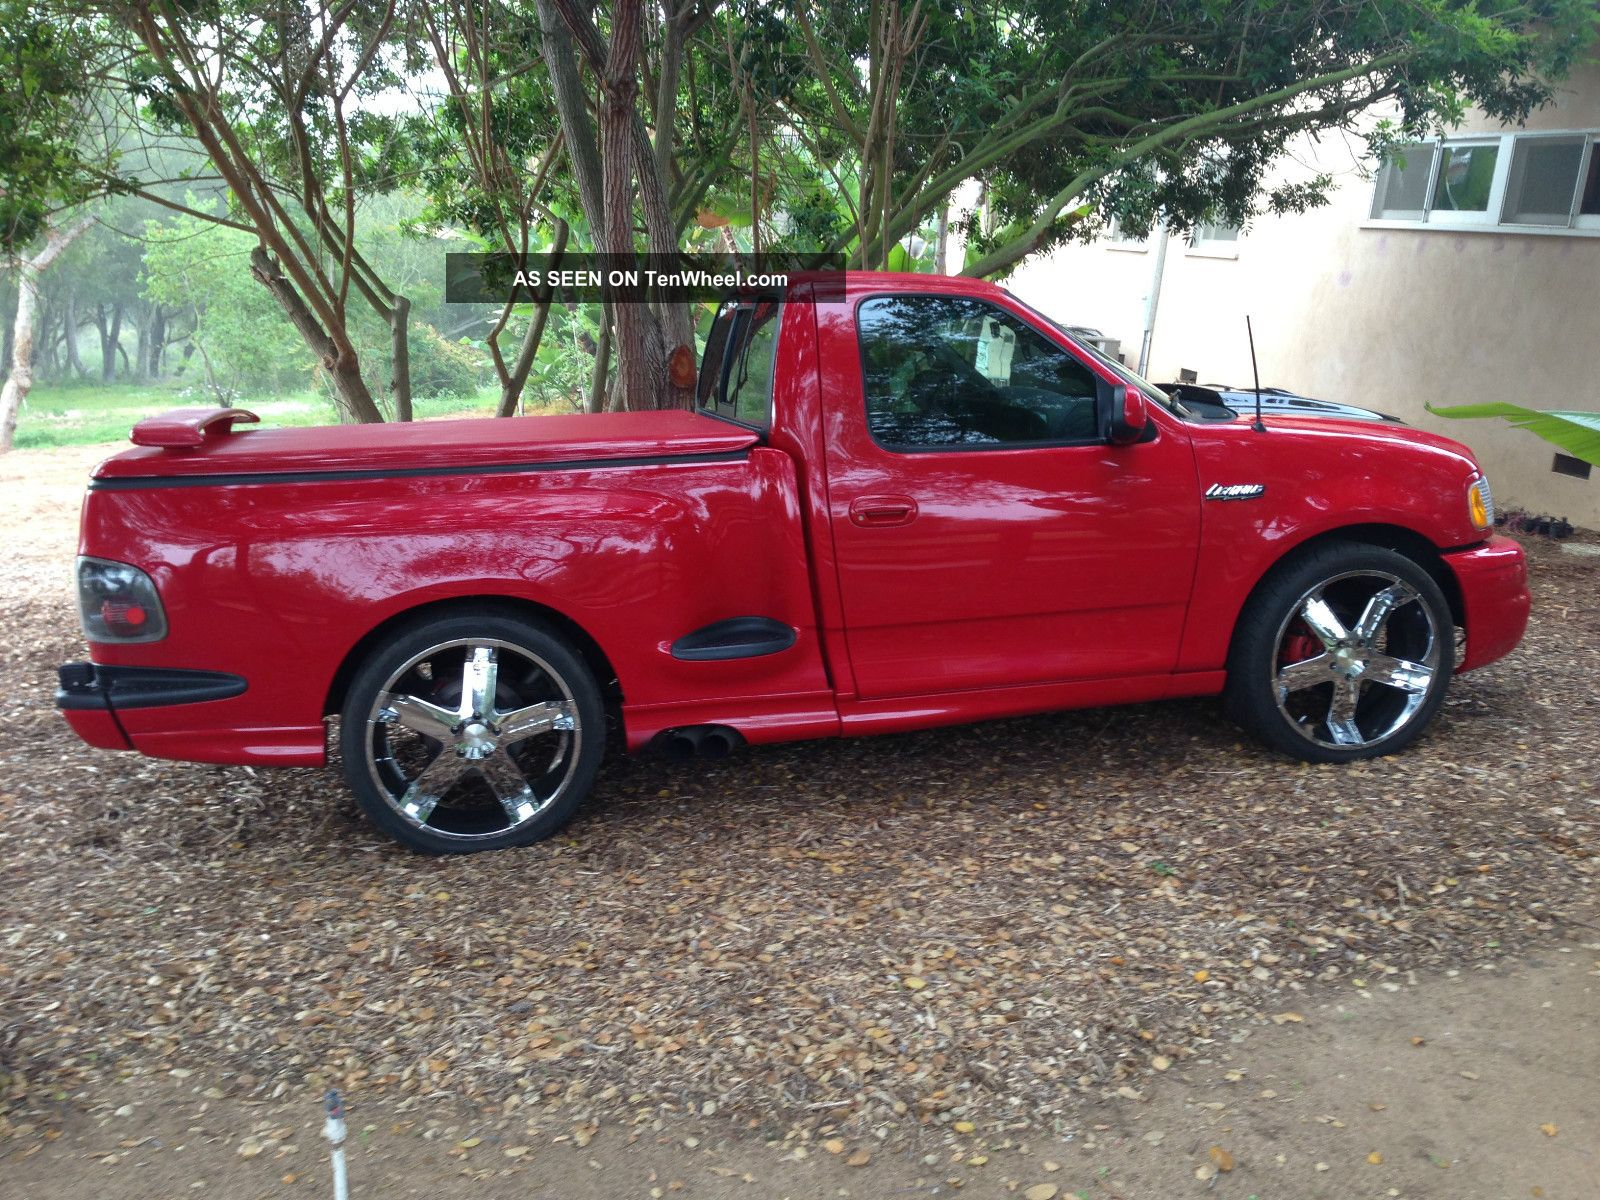 92 to 96 ford f150 chrome rims autos post. Black Bedroom Furniture Sets. Home Design Ideas